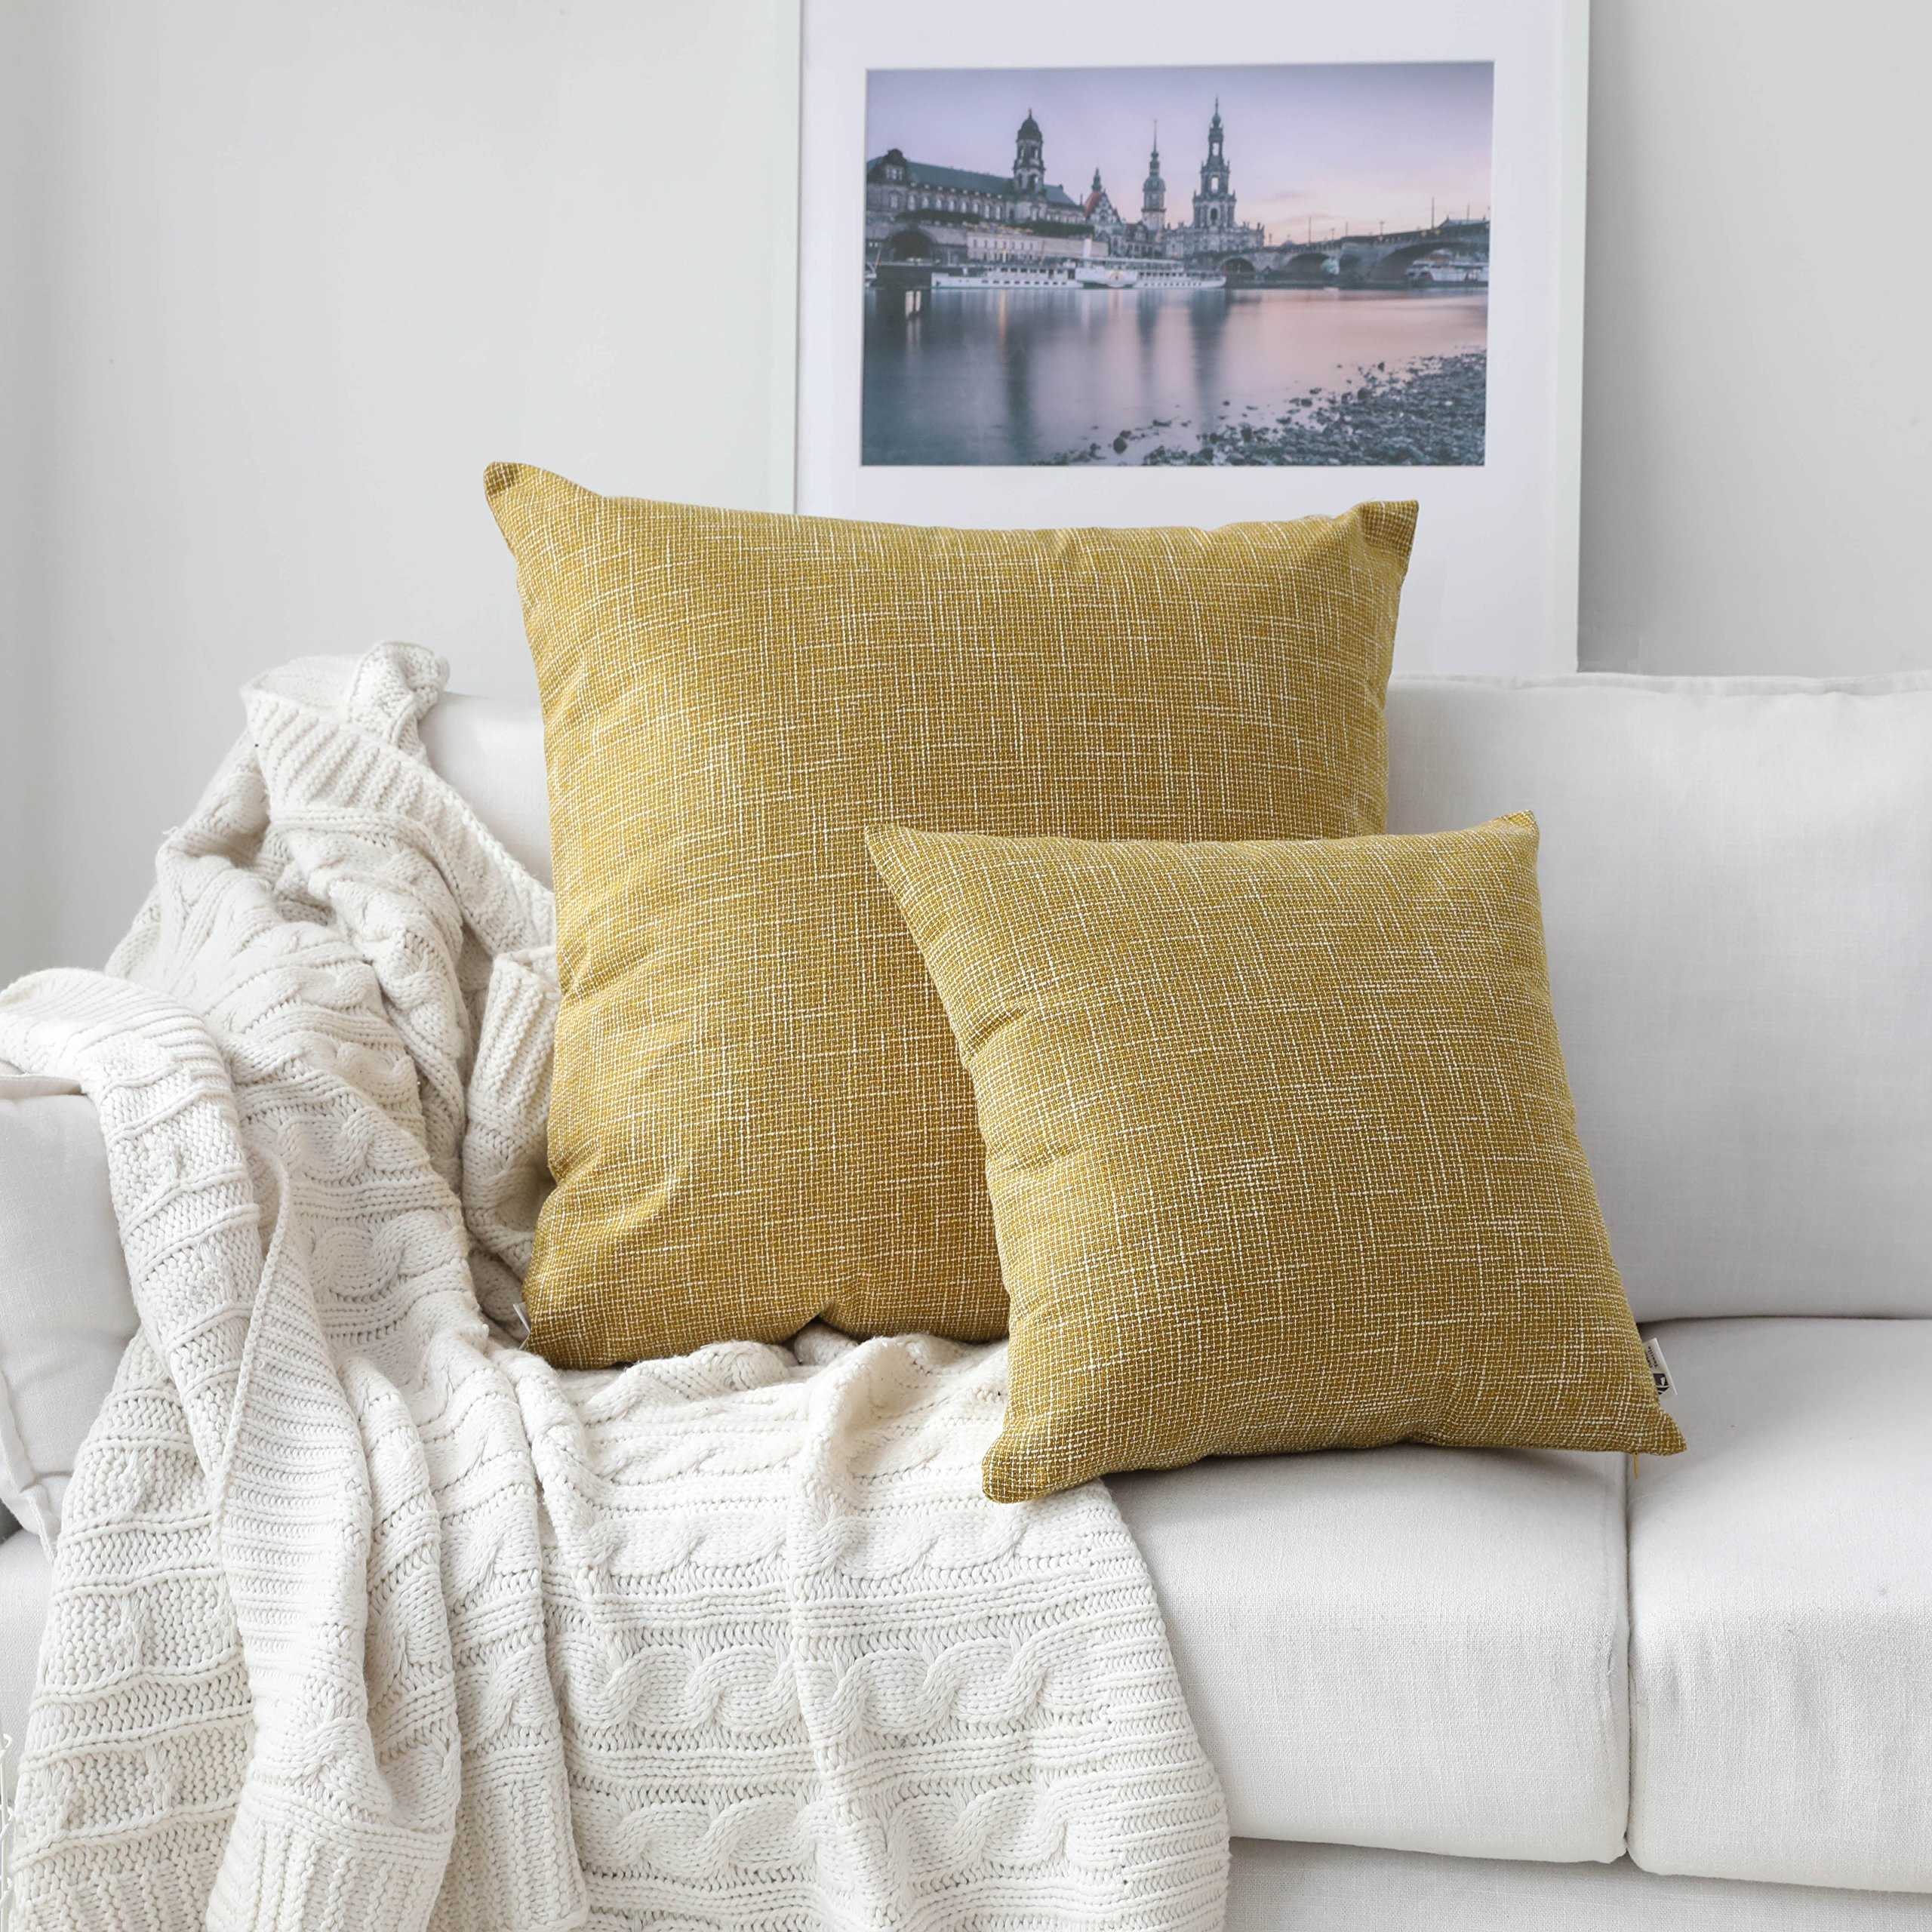 Kevin Textile Decorative Linen Pillowcases for Couch/Sofa/Bed/Car, Honey Yellow Striped Star Both Sides, 26x26-inch (66x66cm), 2 Pieces,Honey Yellow